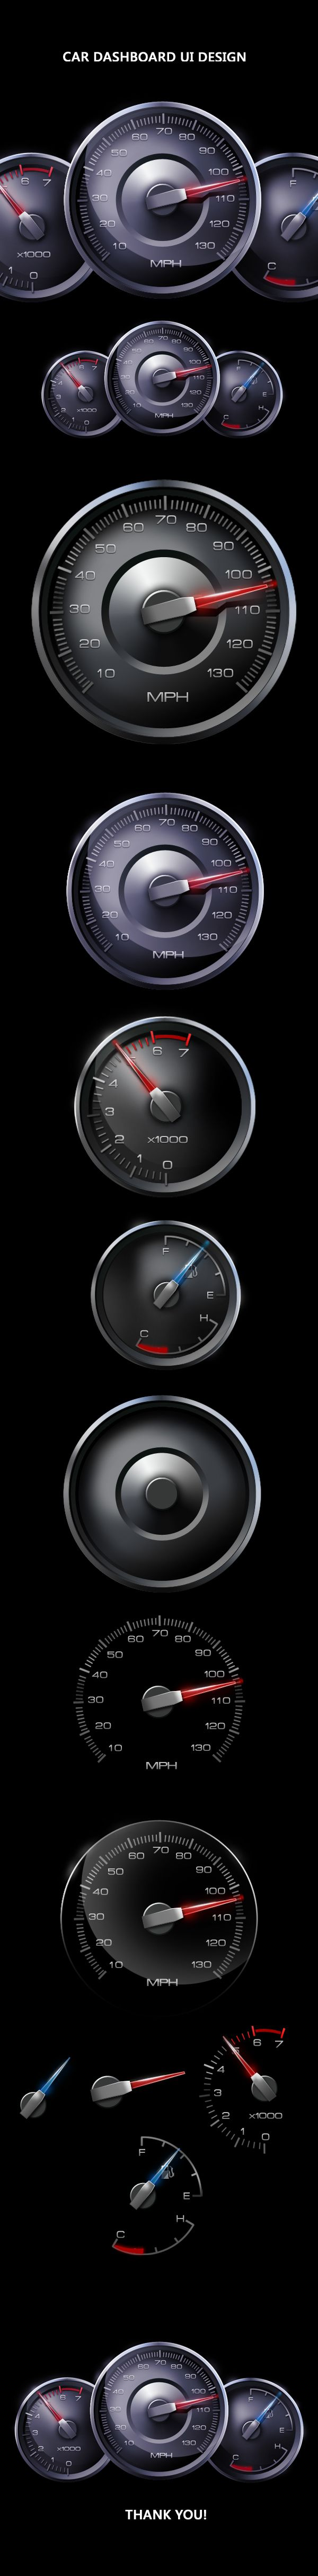 Car Dashboard Ui Design by Mahesh Lonkar, via Behance